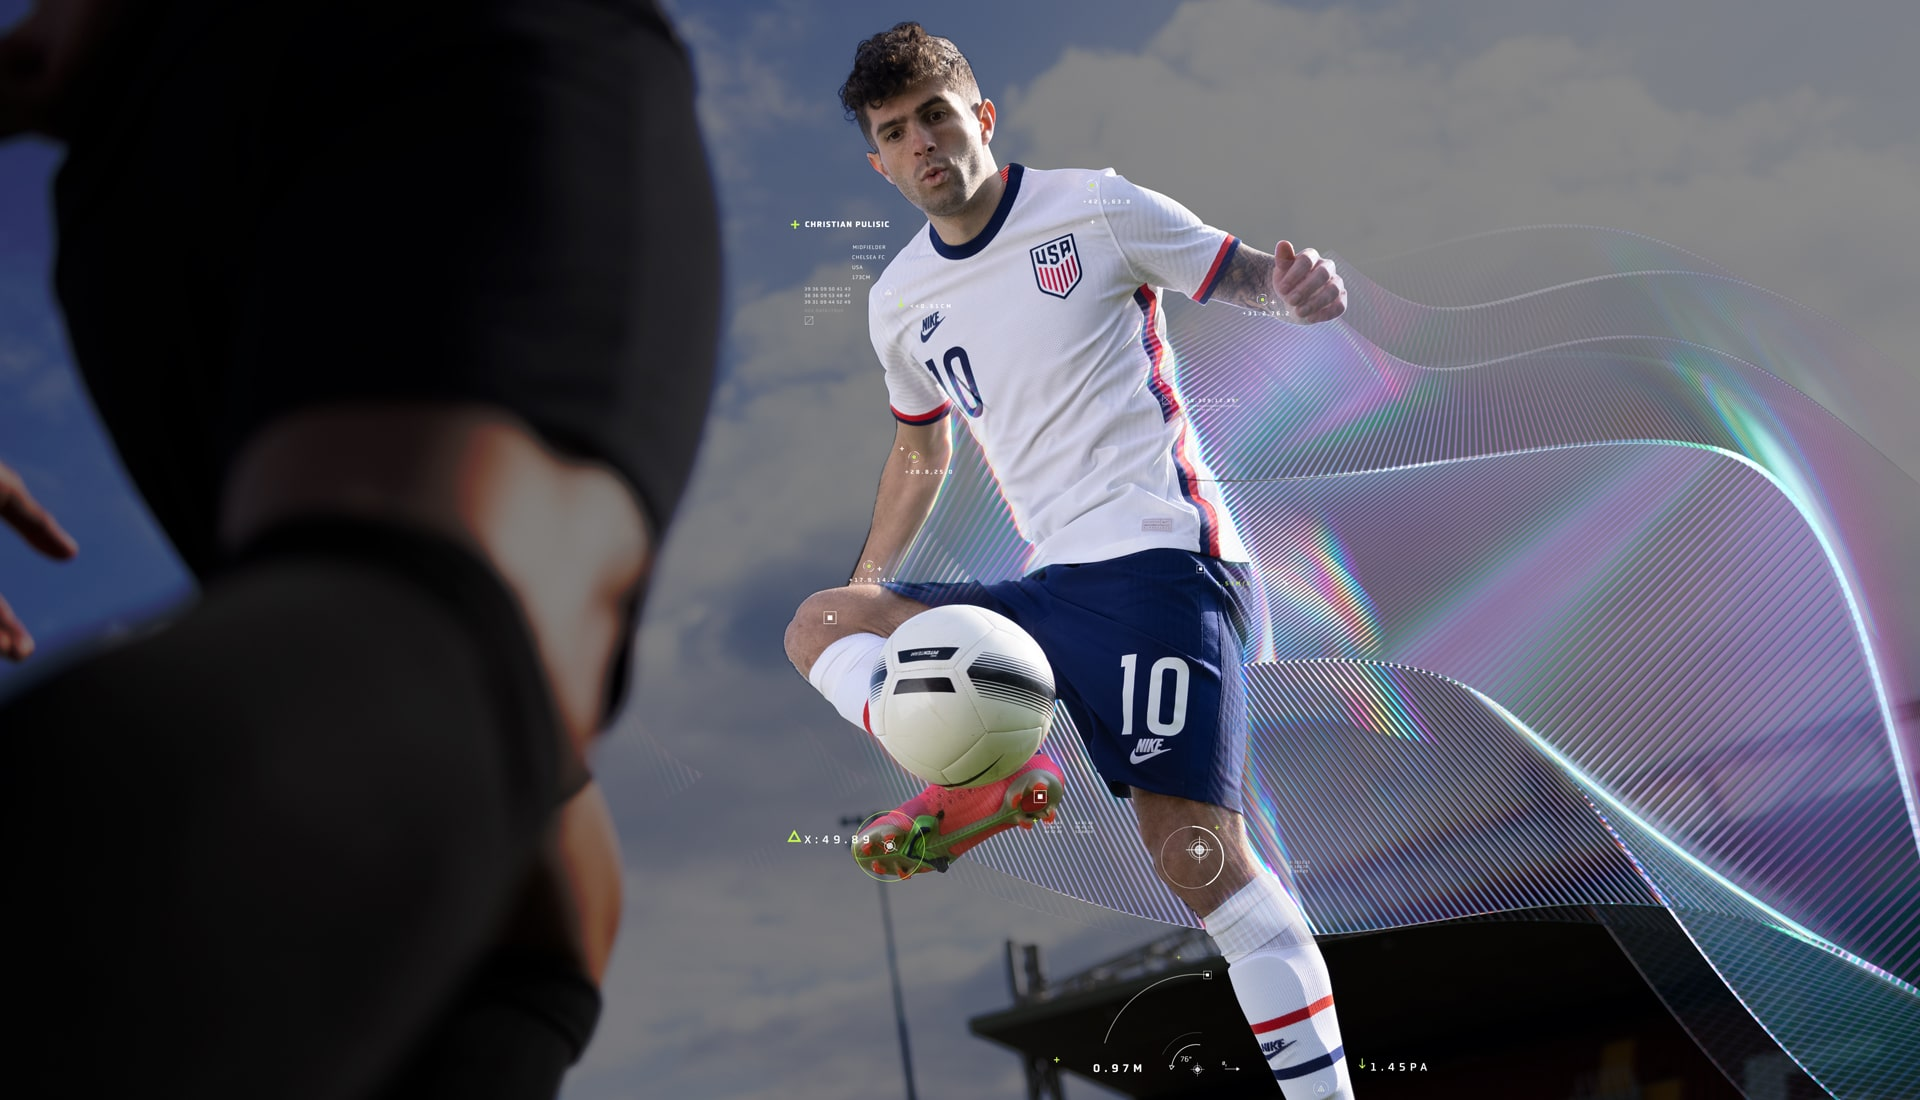 FIFA 22 Official Reveal Trailer Places Focus On Groundbreaking New Gameplay